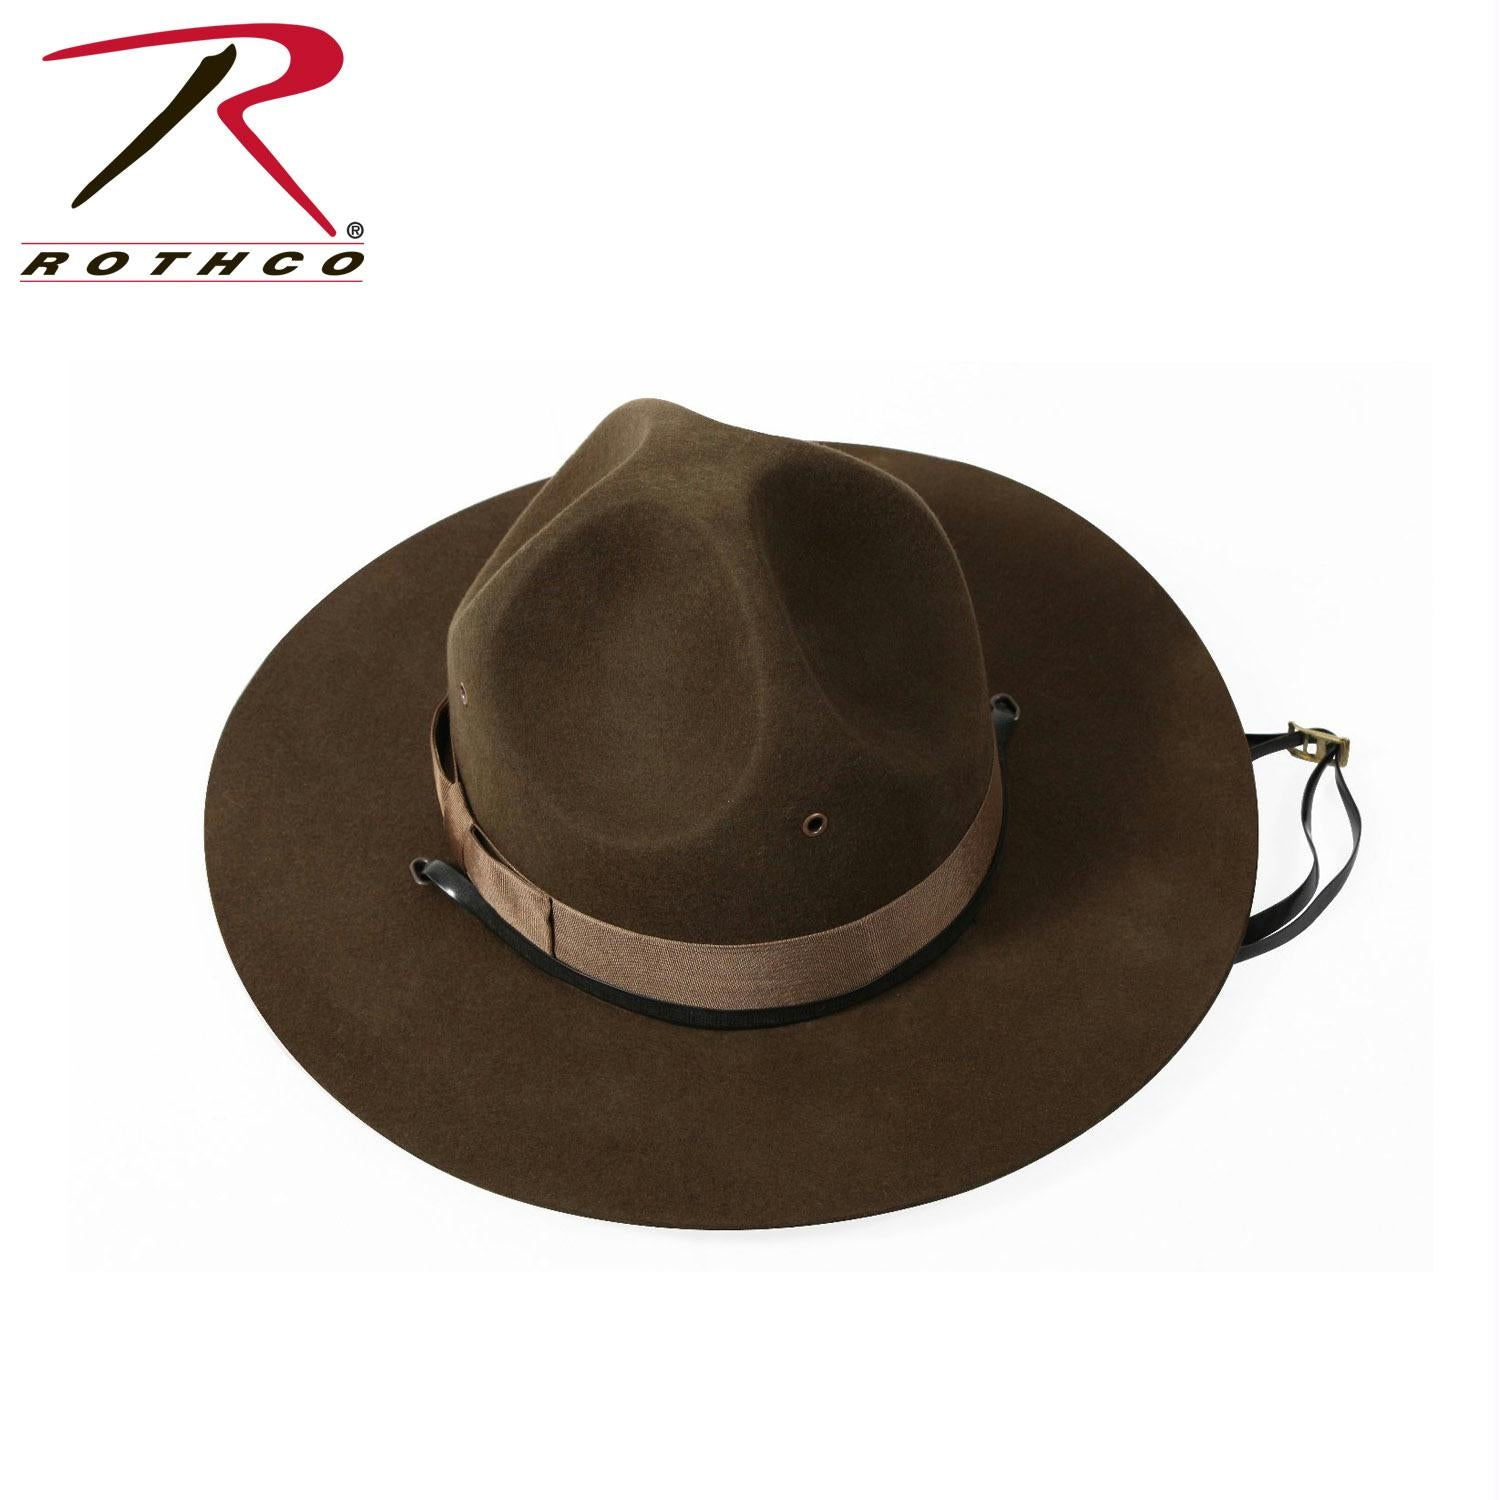 Rothco Military Campaign Hat - 7 5/8